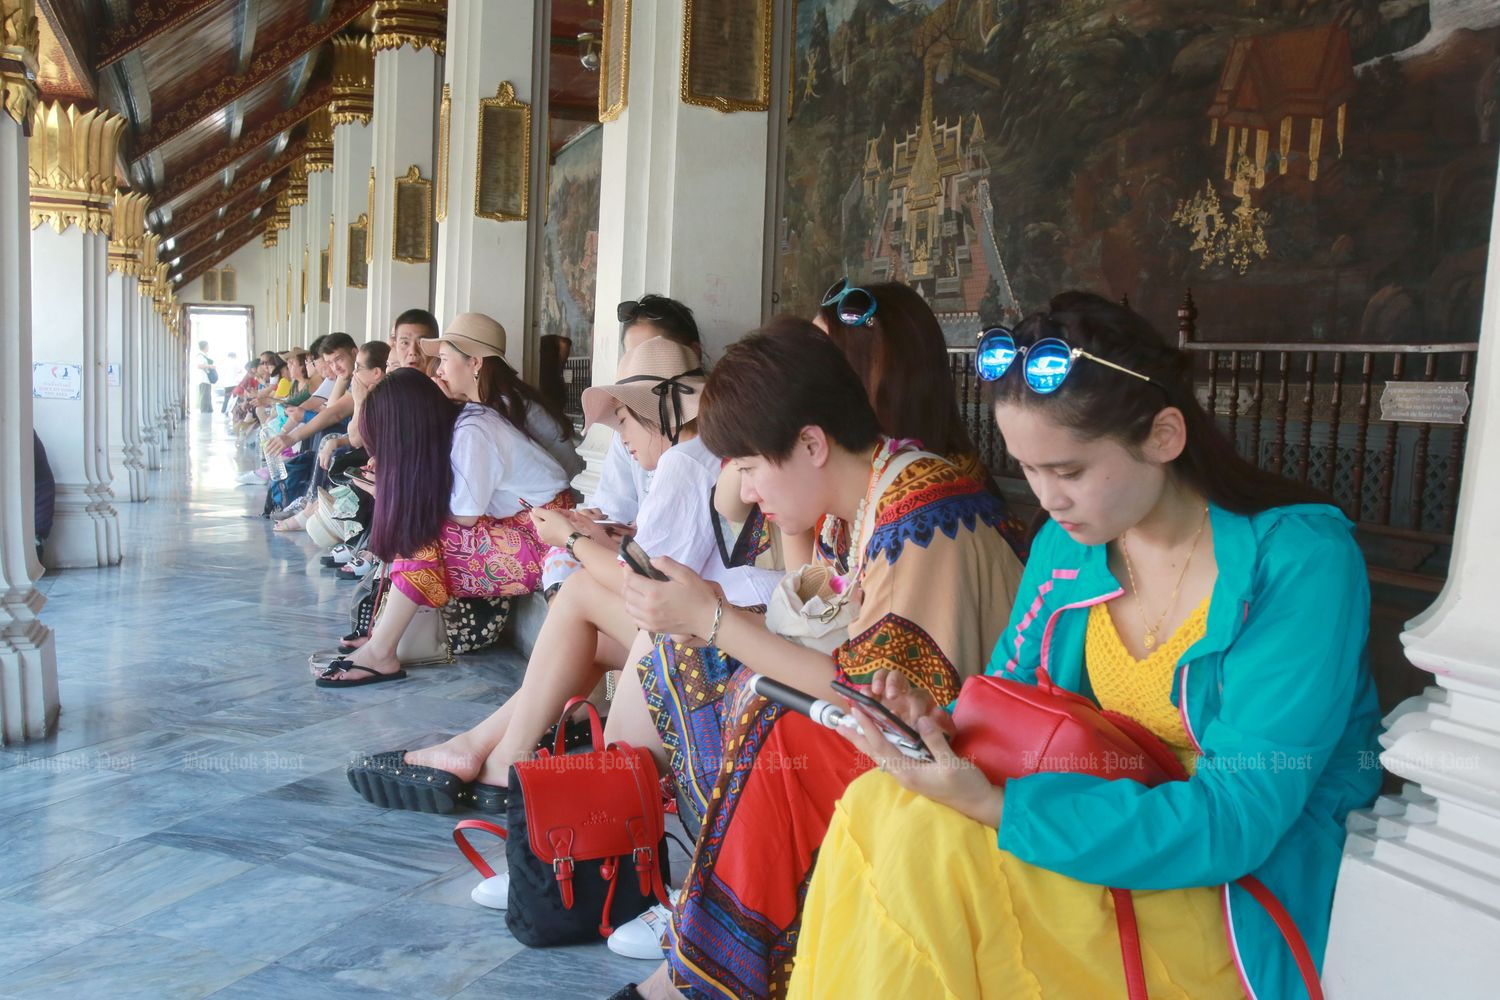 Chinese tourists rest during a visit to the Grand Palace in Bangkok in 2018. (Bangkok Post file photo)